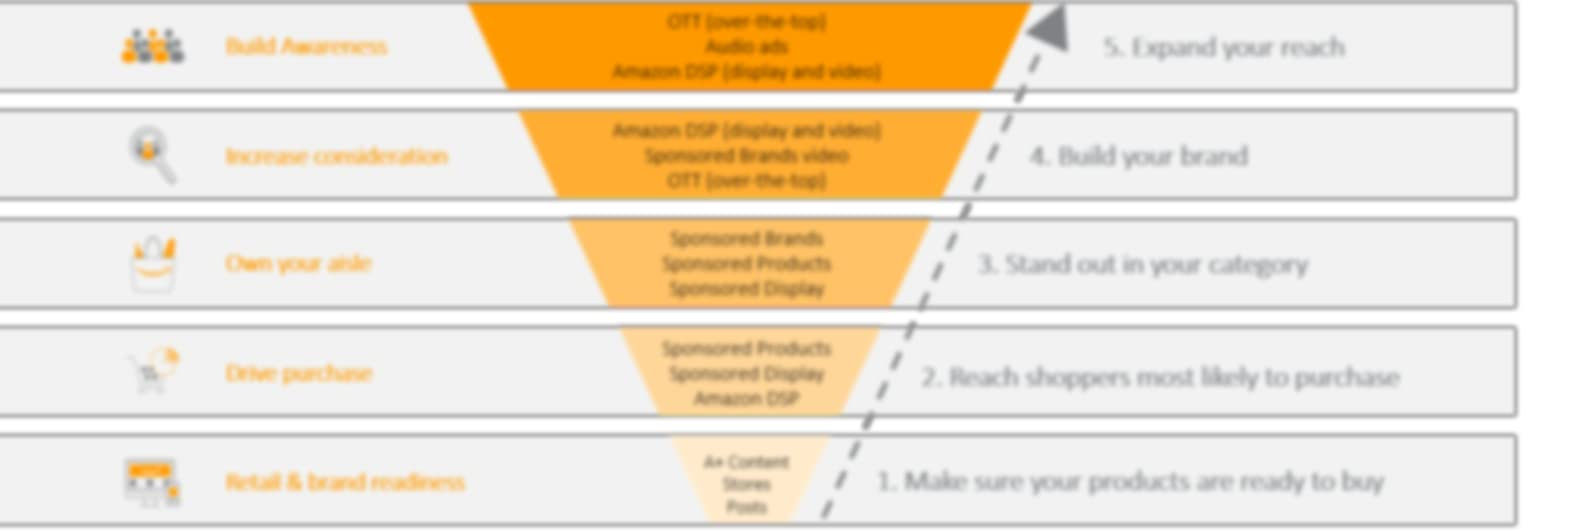 Marketing funnel example